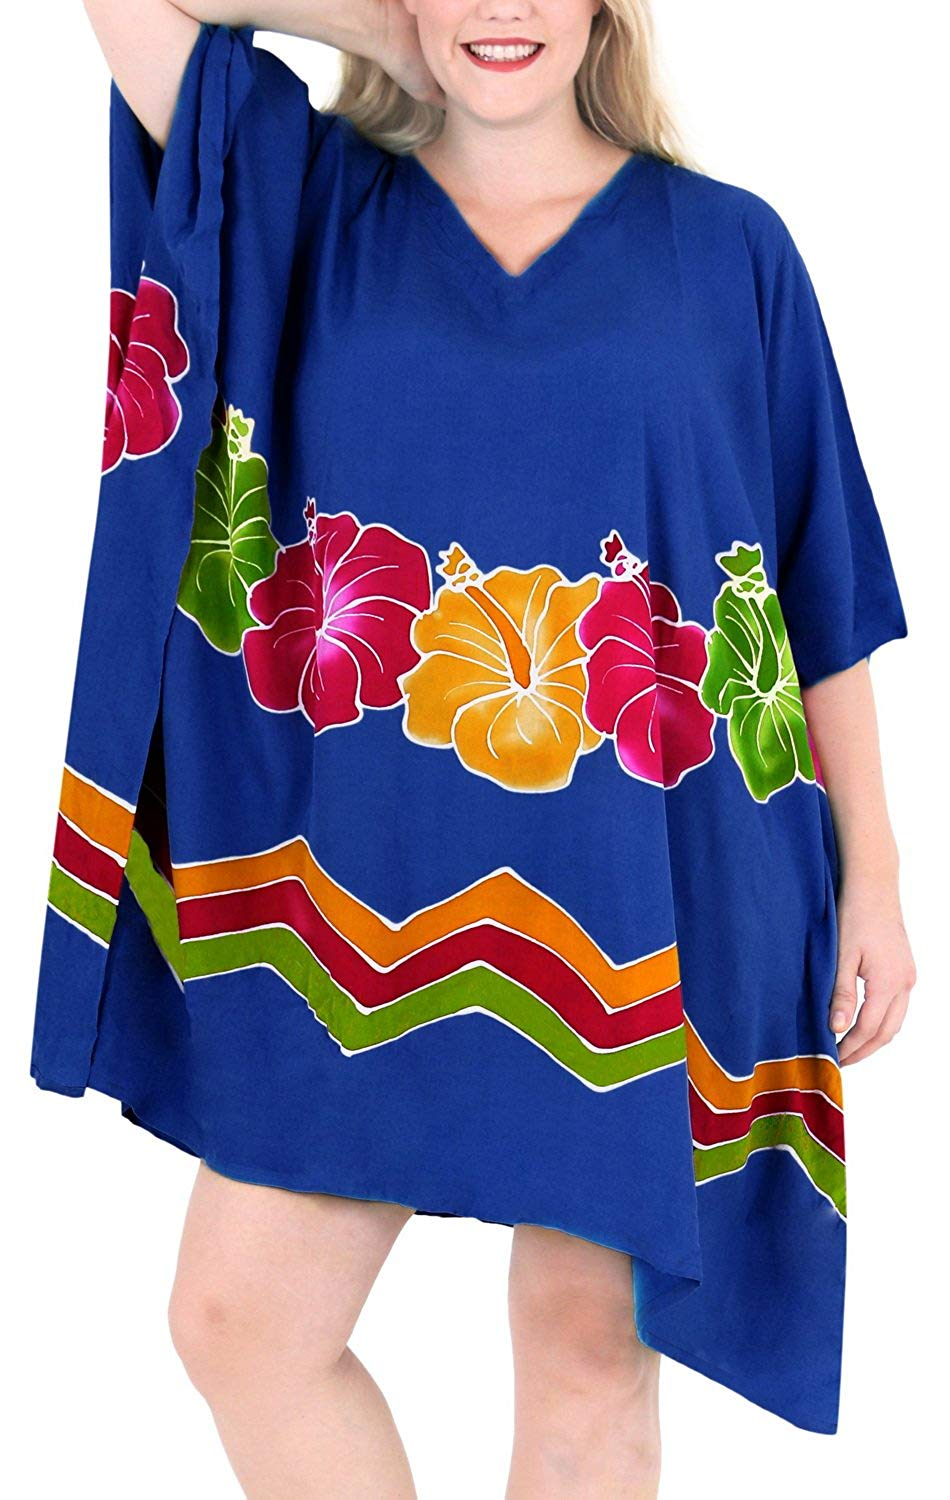 Women's Beachwear Evening Plus Kimono Blouse Loose Casual Cover ups Casuals Blue